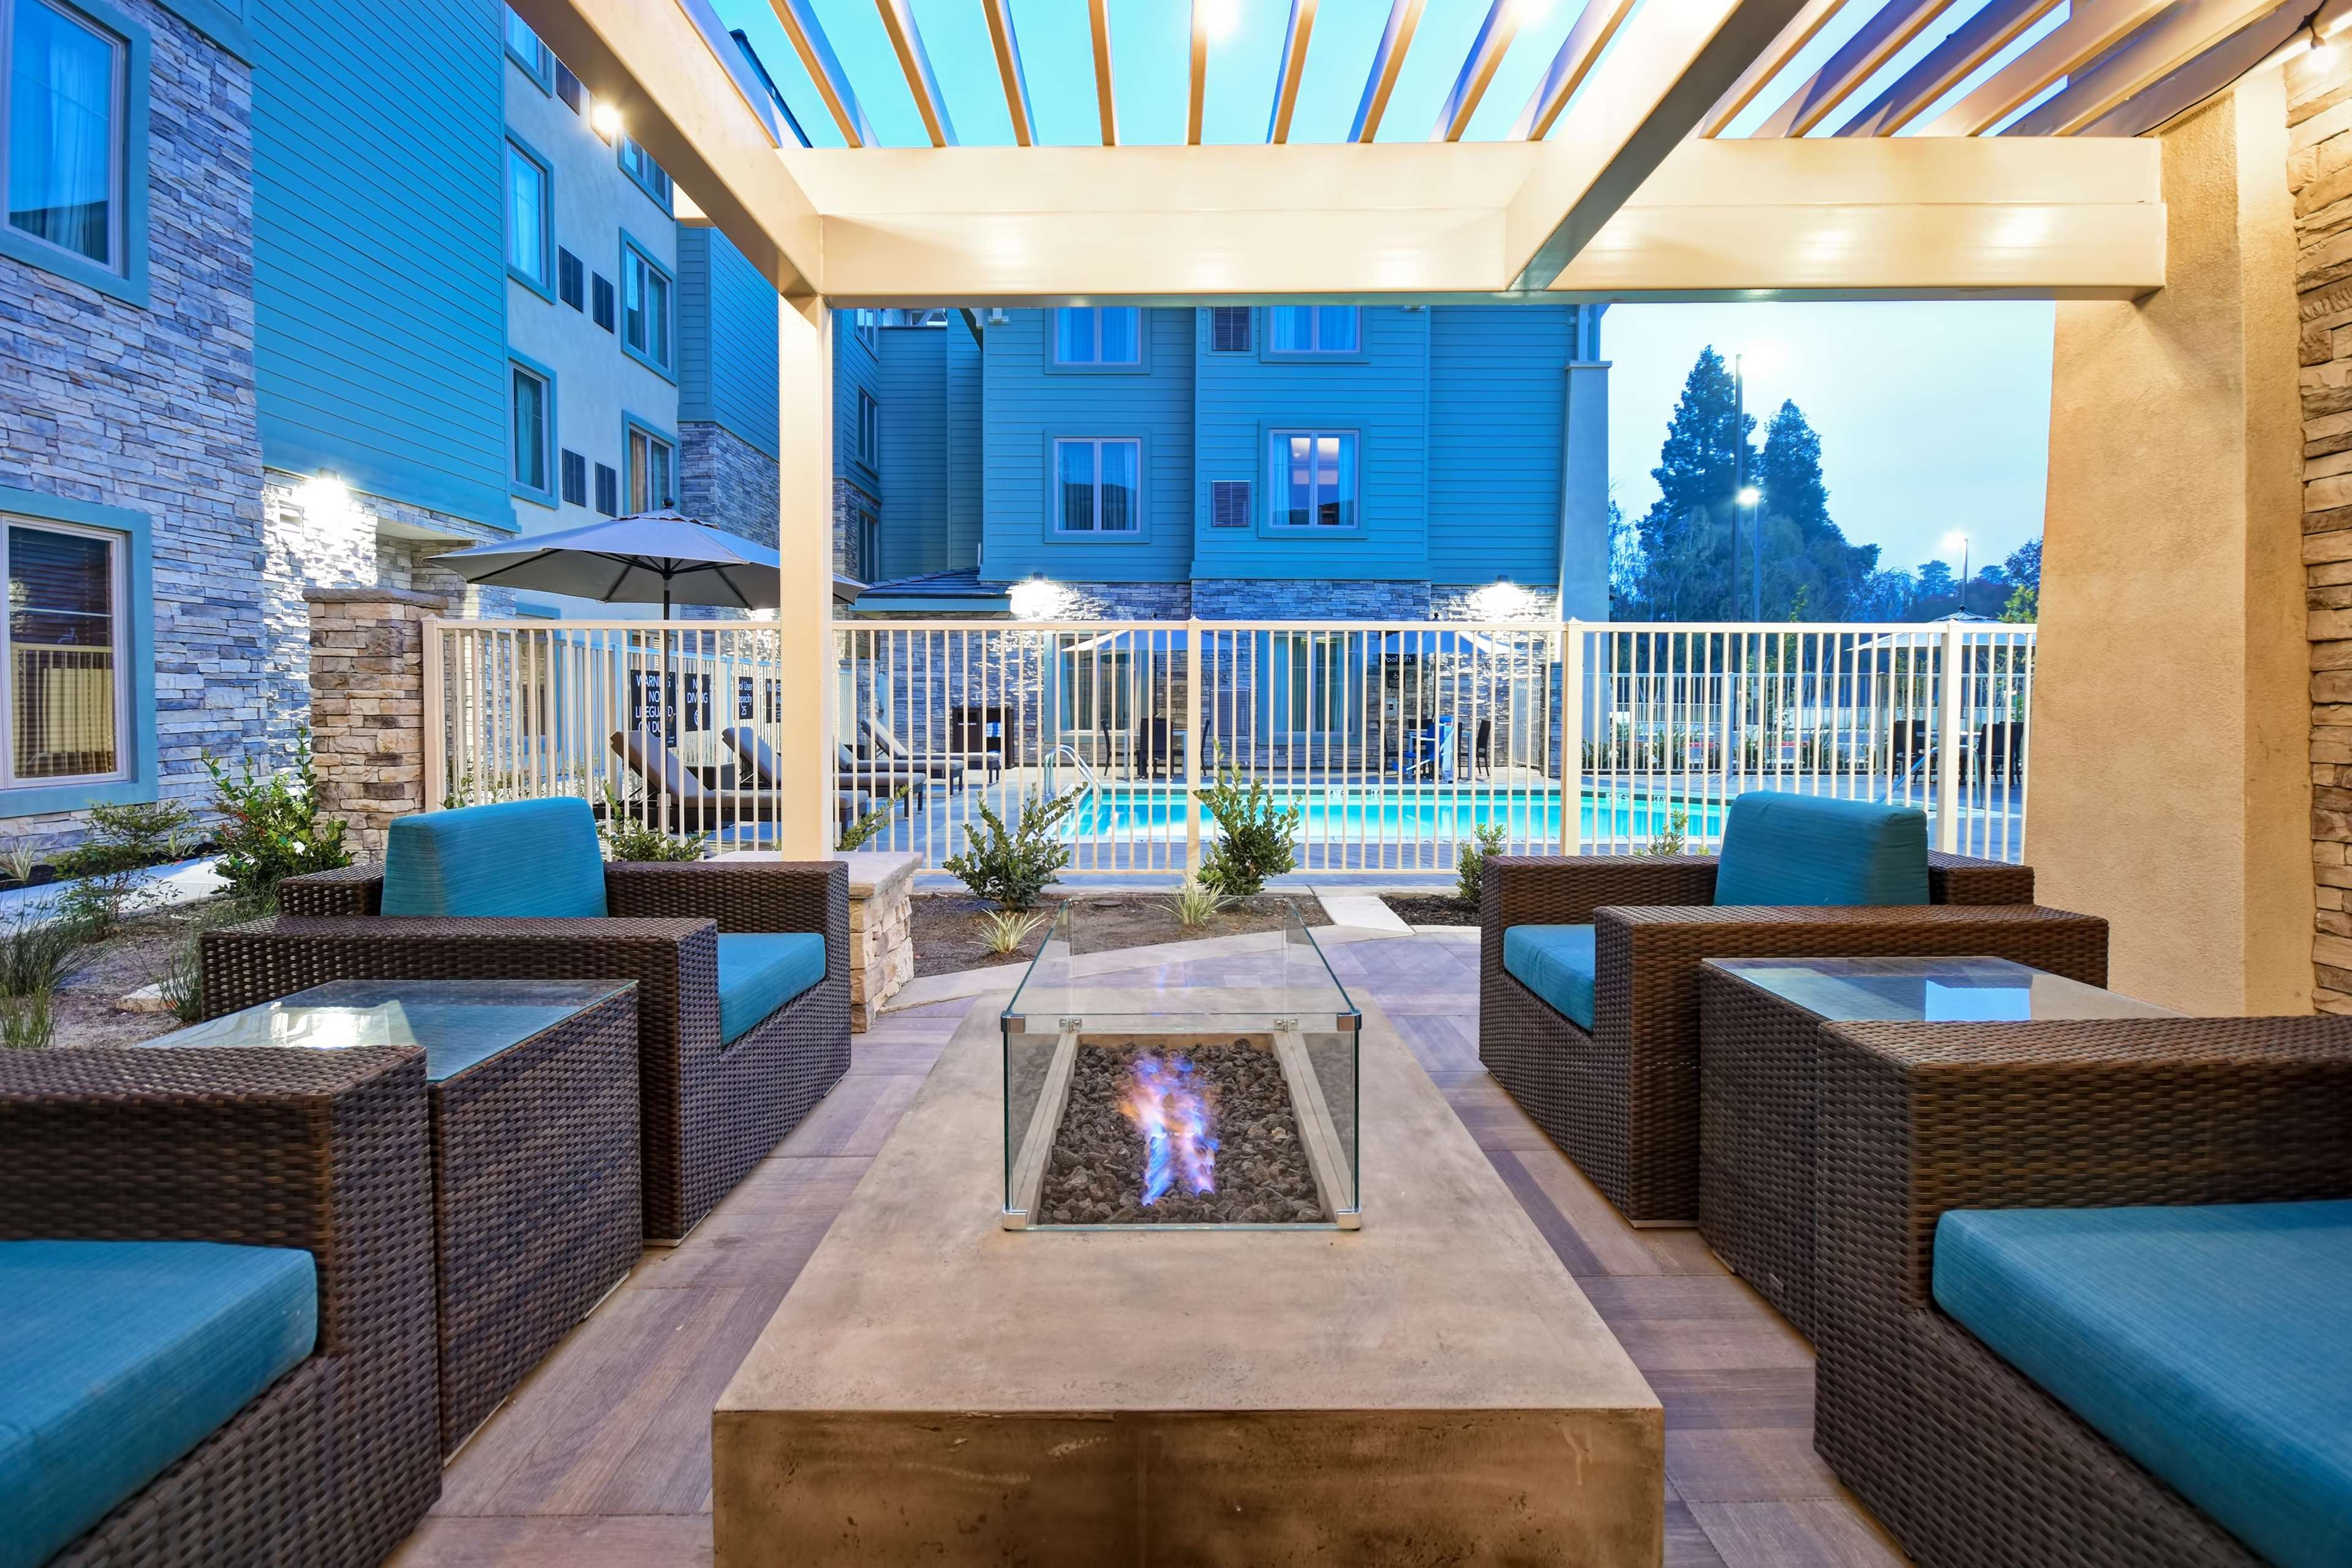 Homewood Suites by Hilton Pleasant Hill Concord image 0